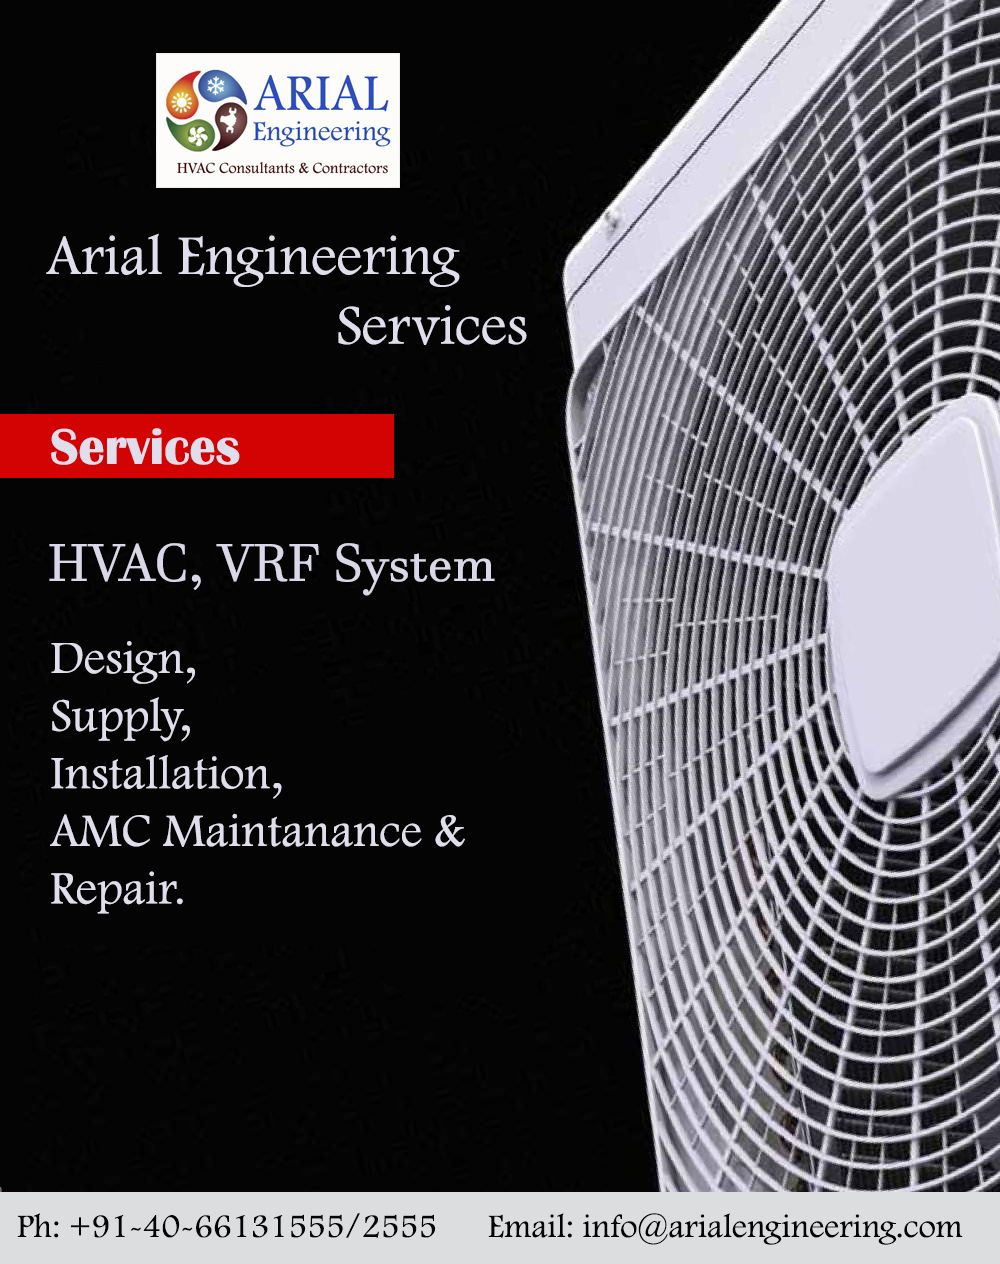 Arial Engineering Services Is A Rapidly Growing Supplier Of World